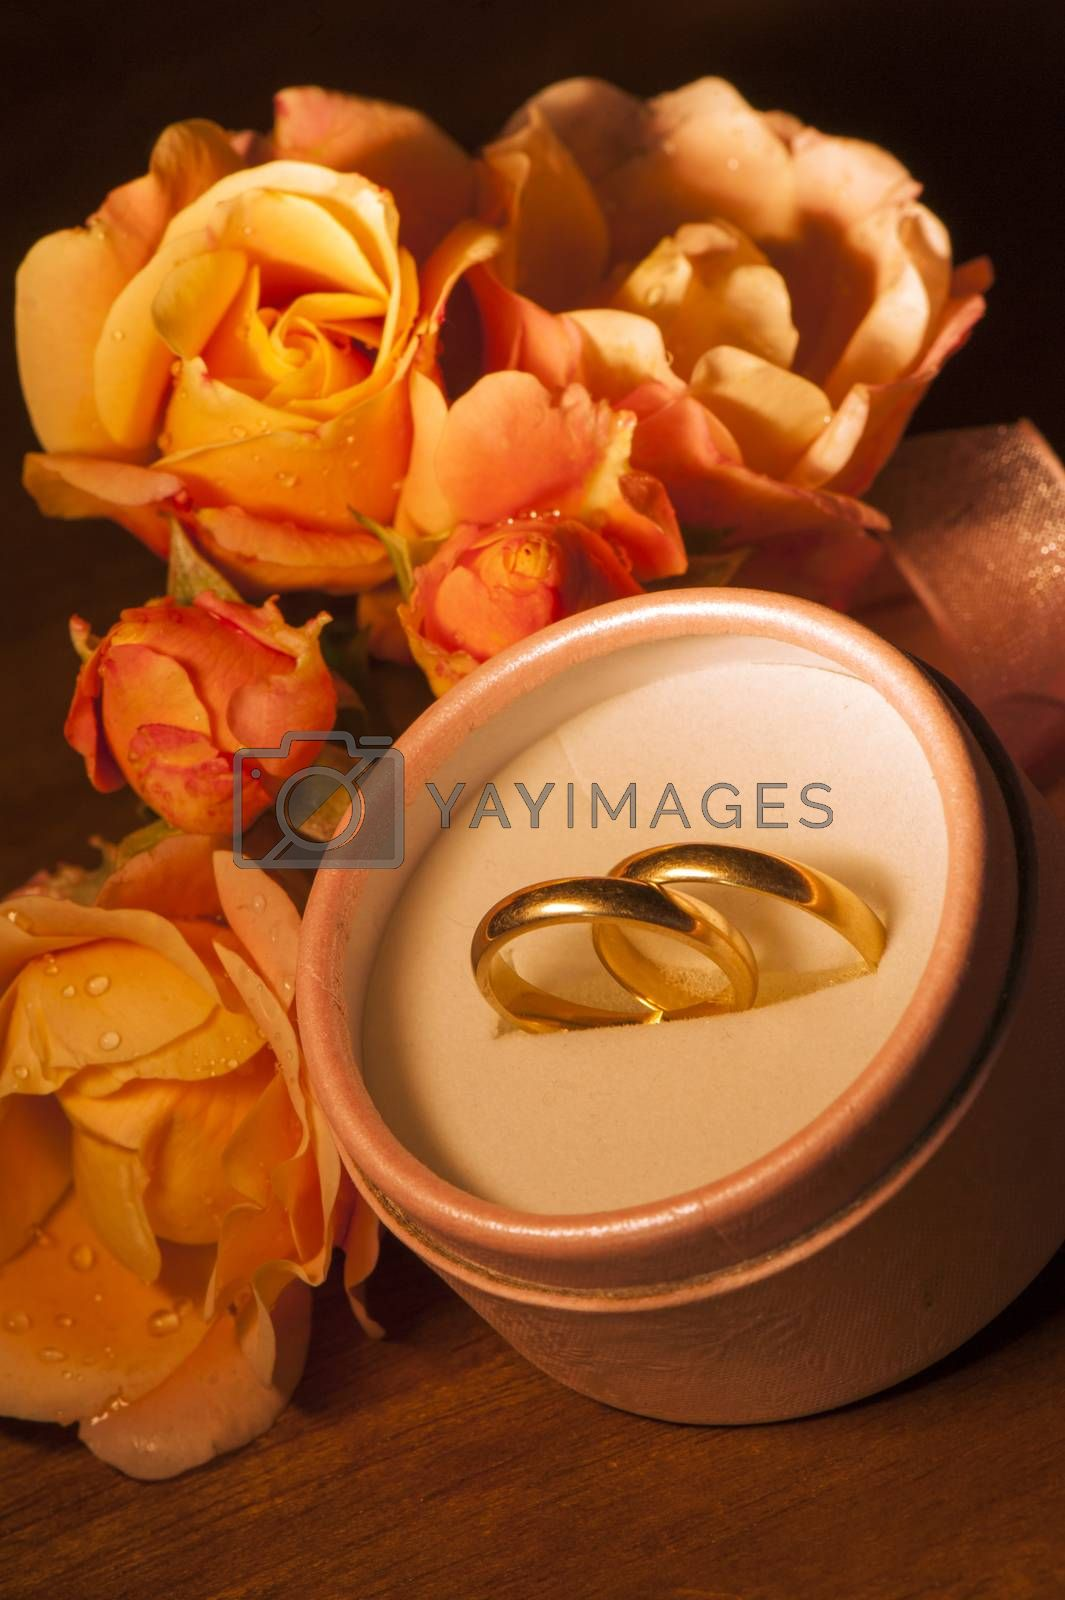 wedding rings on  on a small wooden table